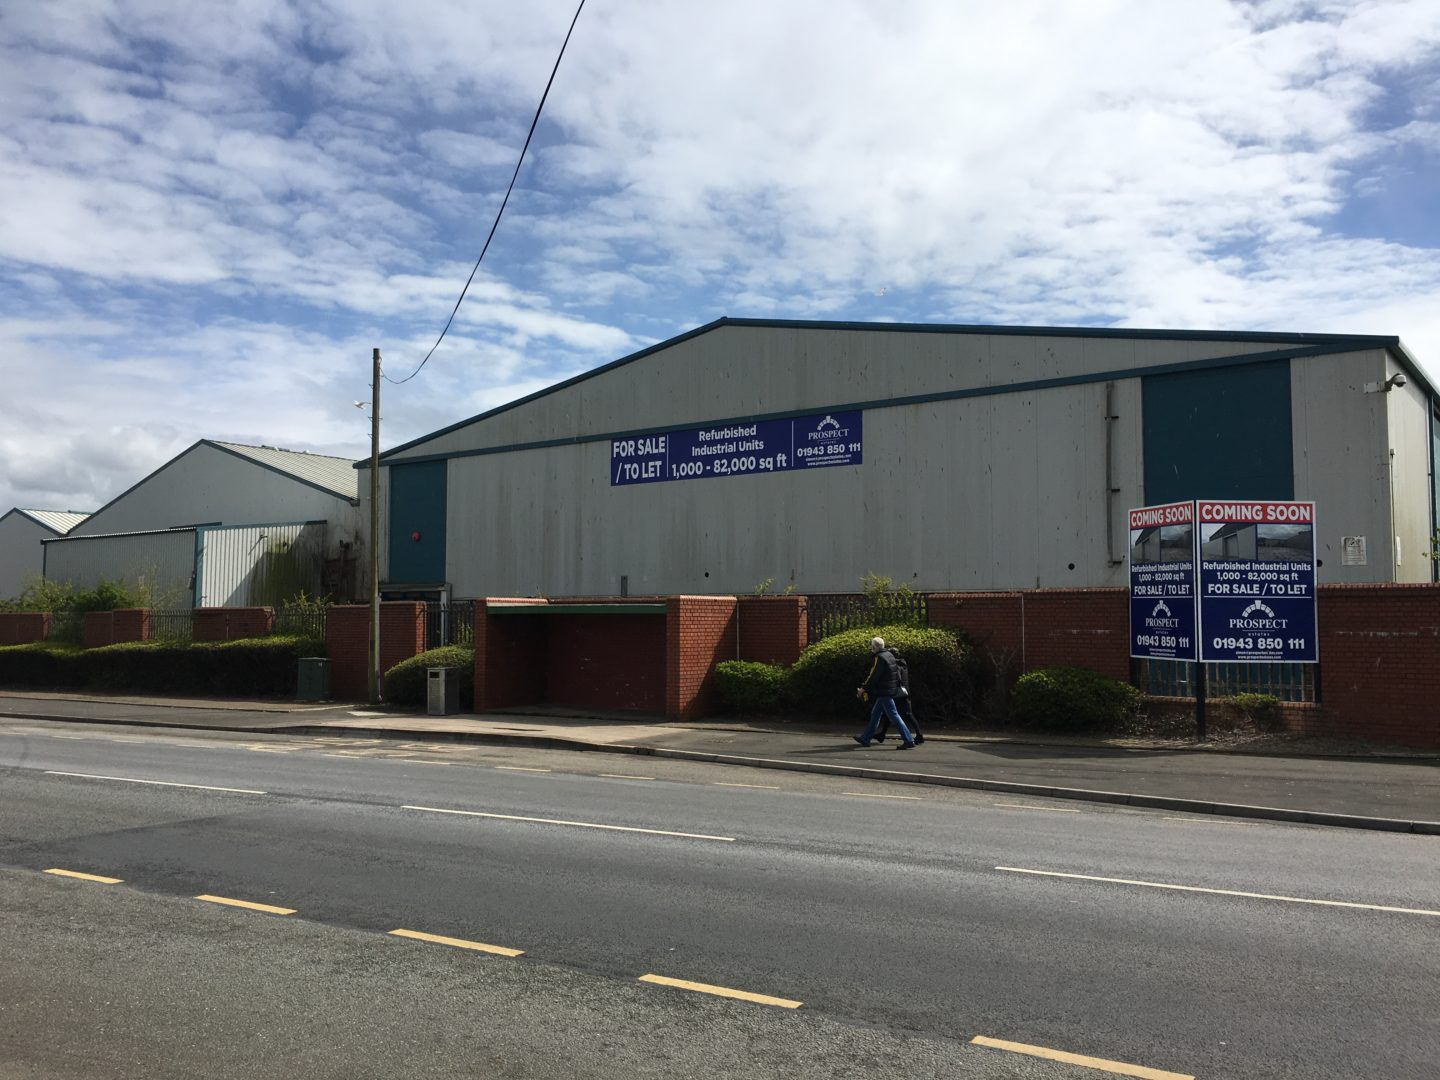 Units at Solway Industrial Estate, Maryport